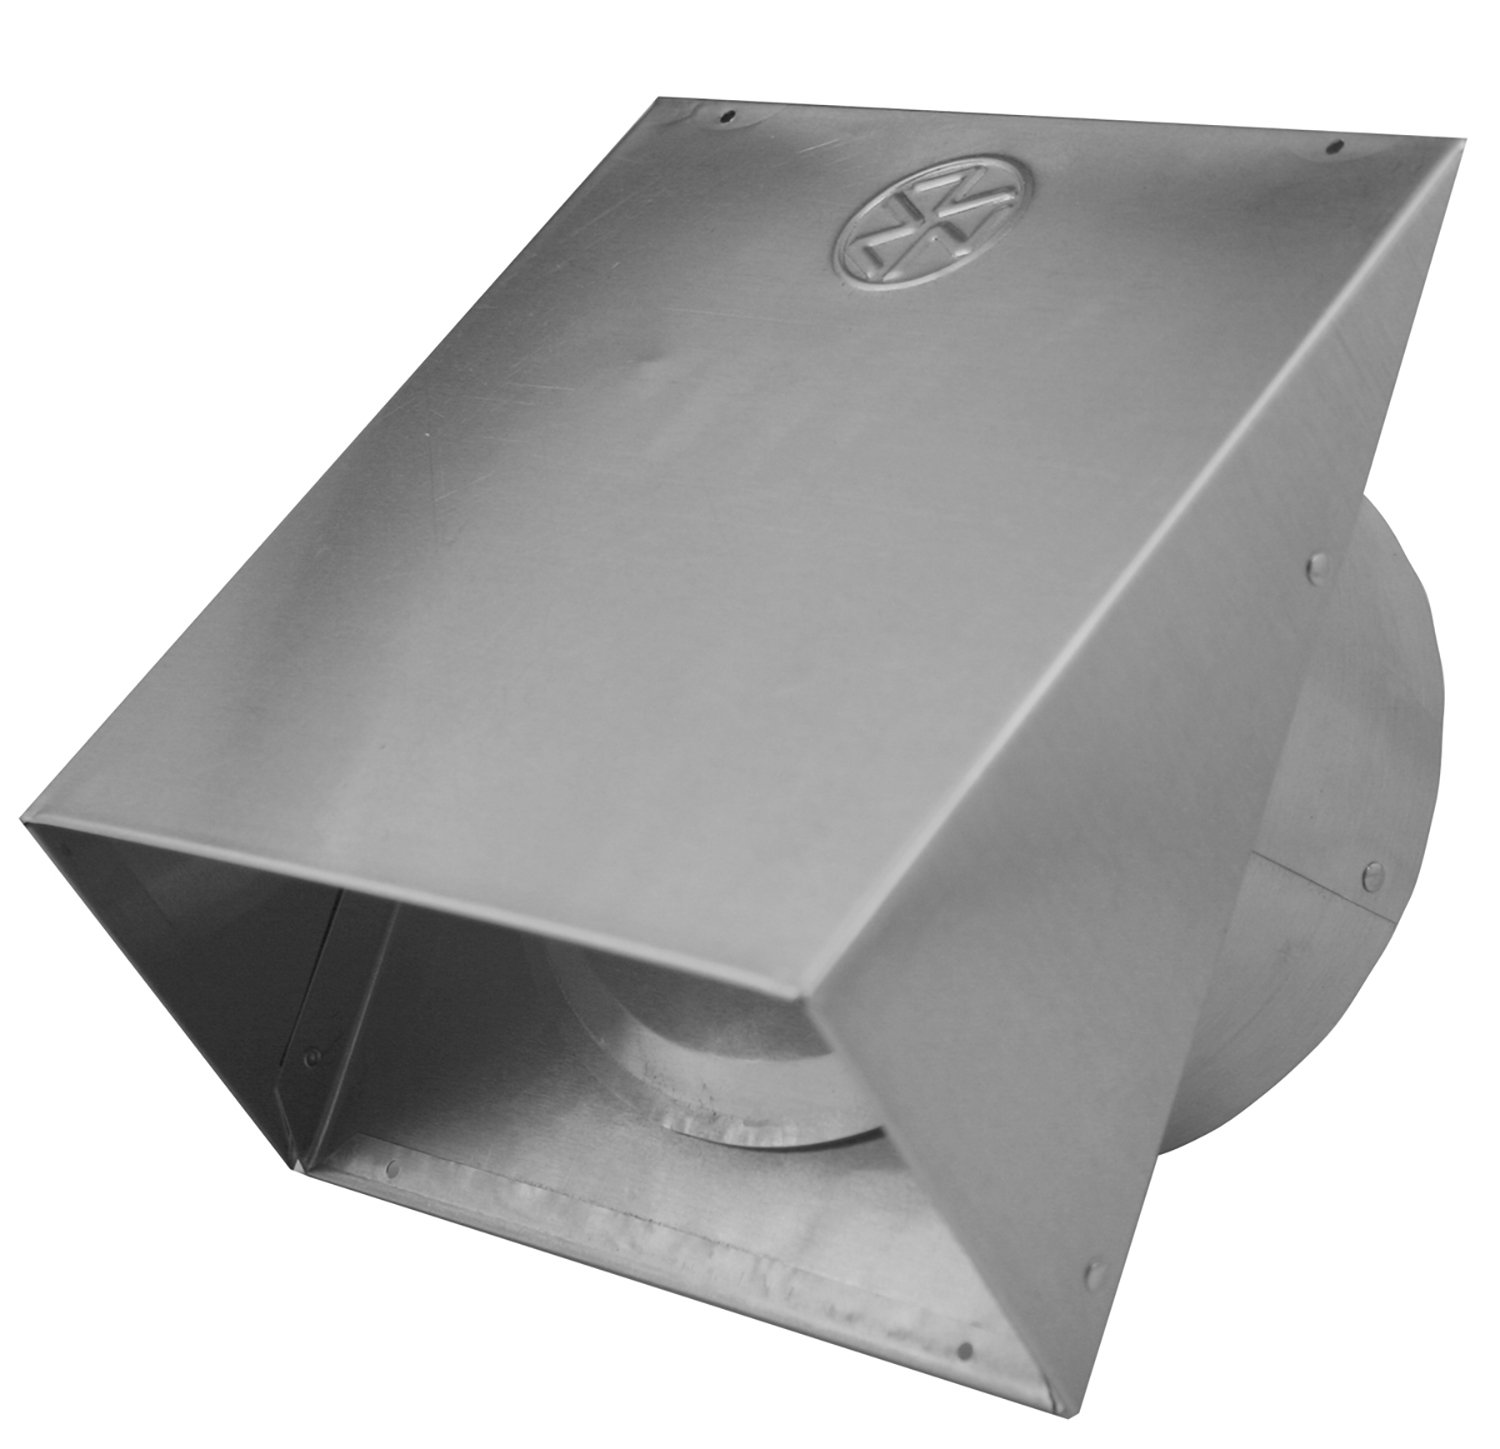 "Builder's Best 011641 Heavy Gauge Wall Vent Hood with Spring Loaded Damper, 6"" Diameter x 6"" Tail, Aluminum"